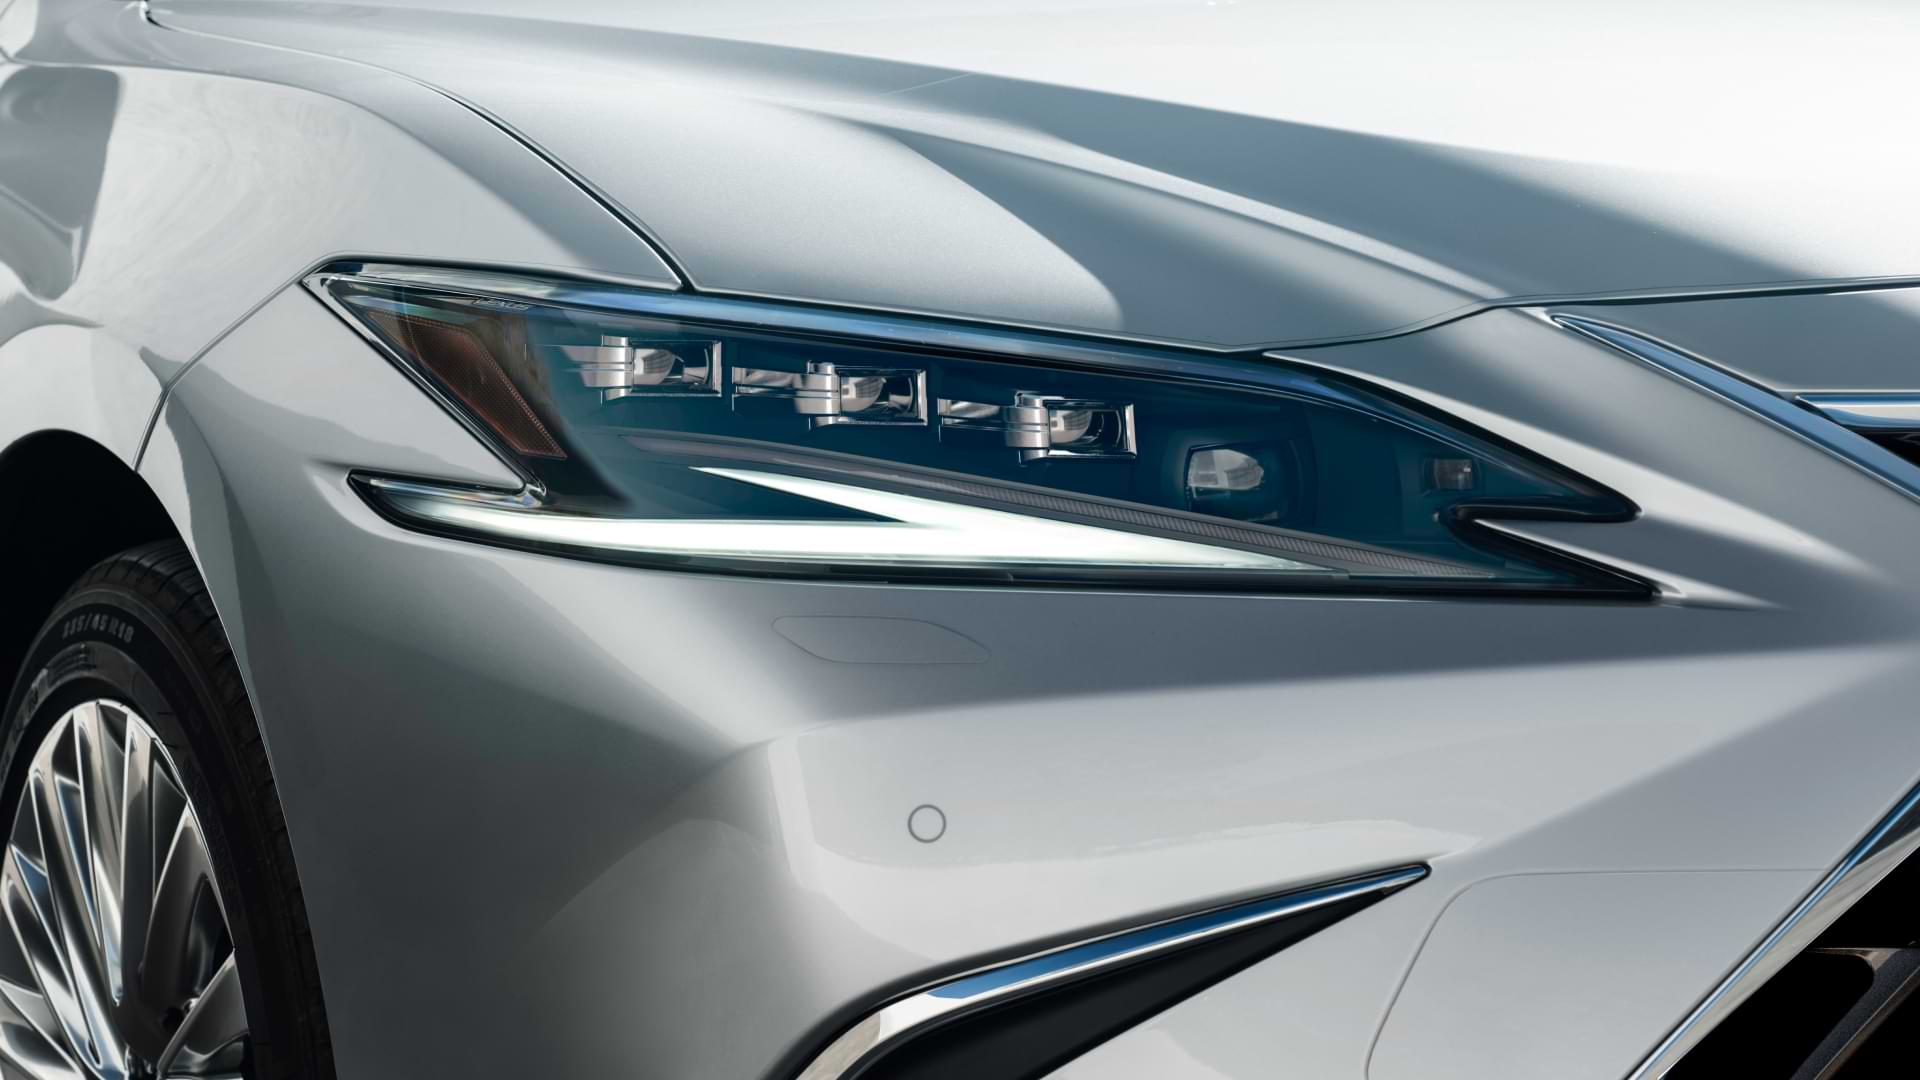 Front headlight of a silver 2021 Lexus ES